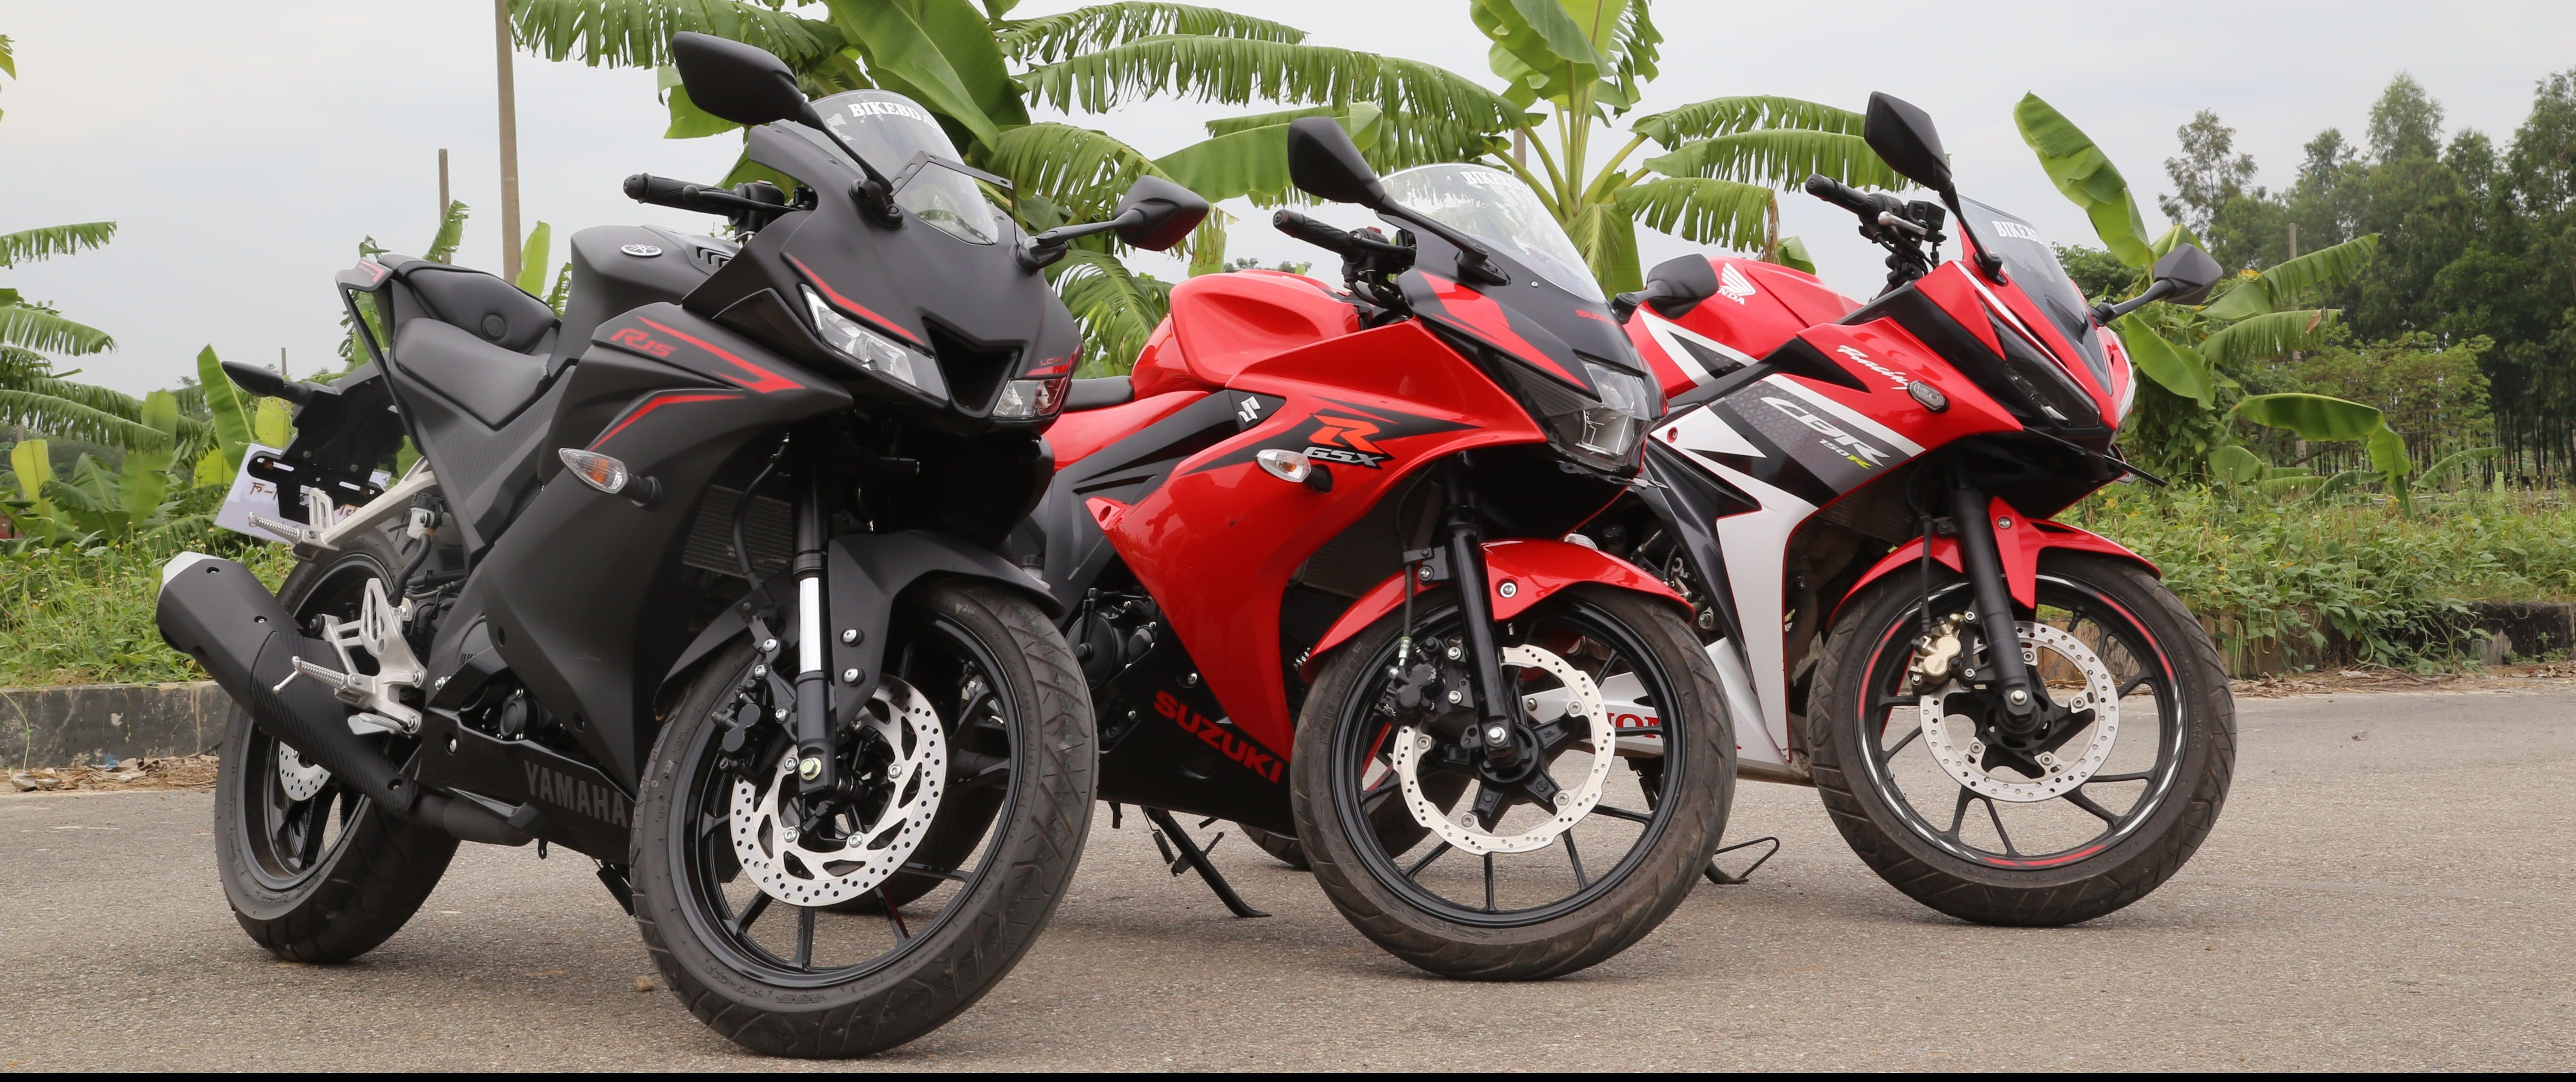 Drive Motorcycle Sales Through Social Media With These 6 Tips